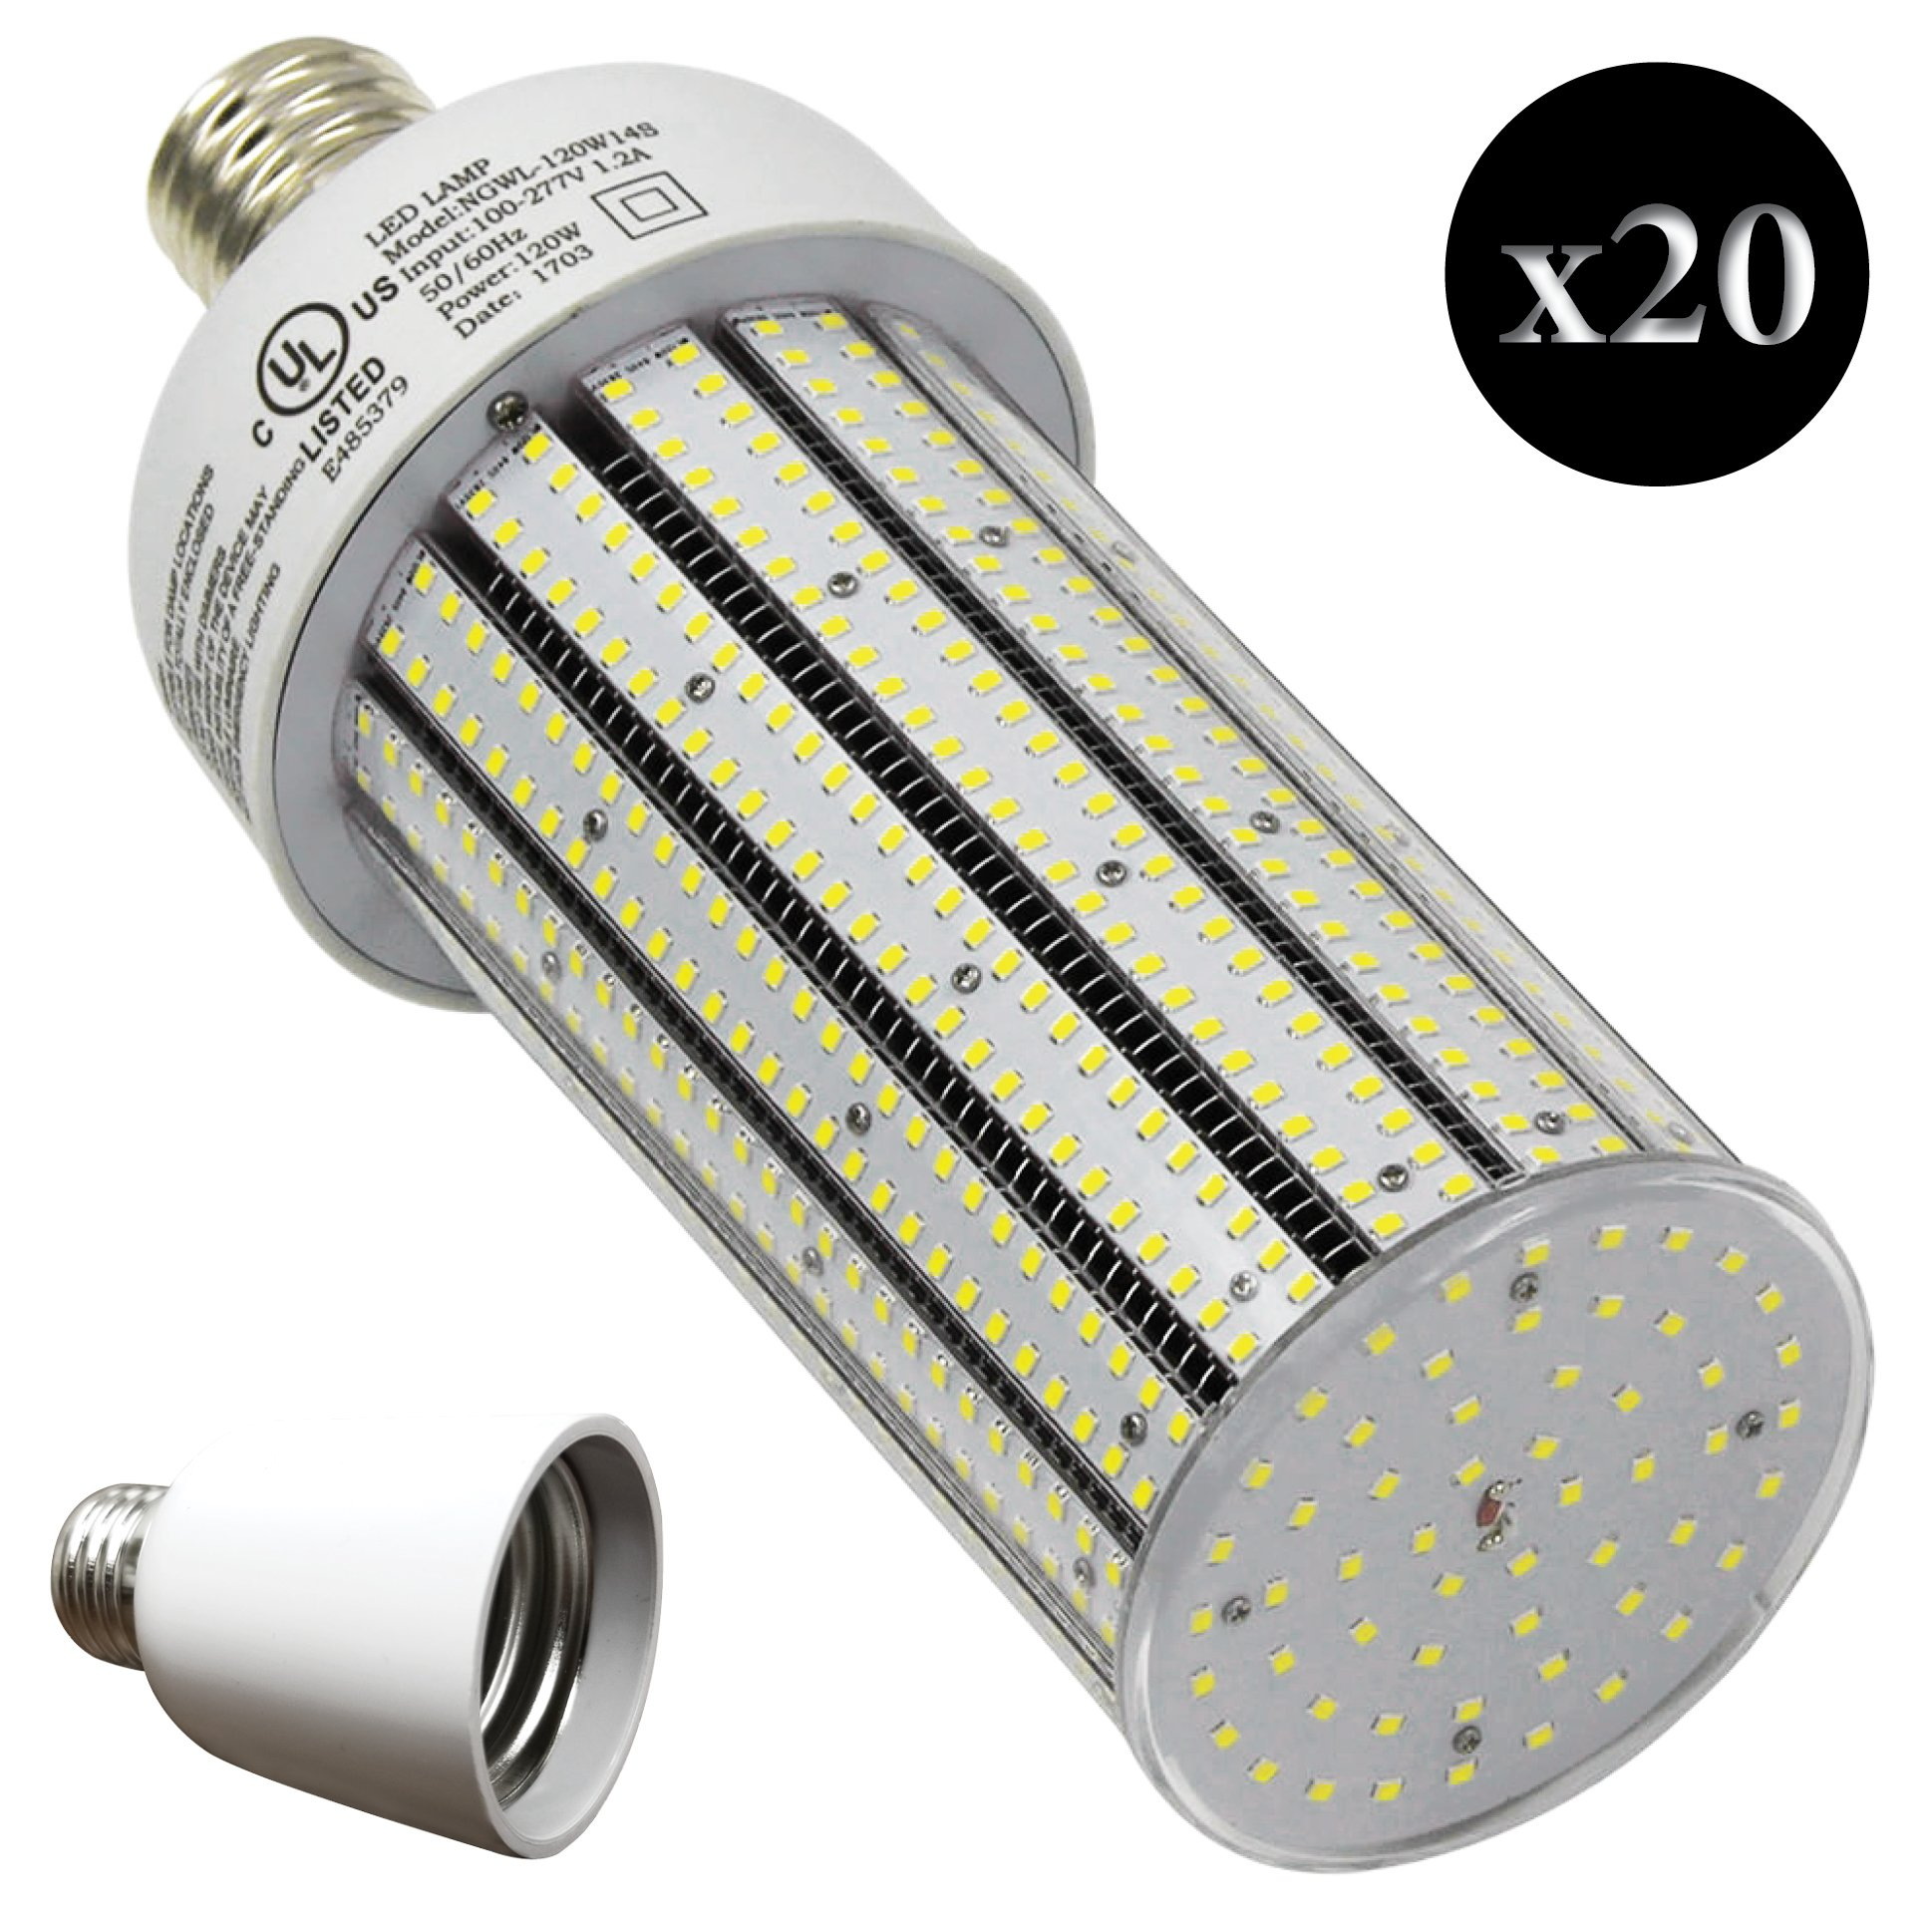 QTY 20 CC120-39 + 20 Adapters LED HIGH BAY SUPER BRIGHT INDUSTRIAL LED LIGHT E39 6500K WHITE 120W (EQUIVALENT TO 720W)